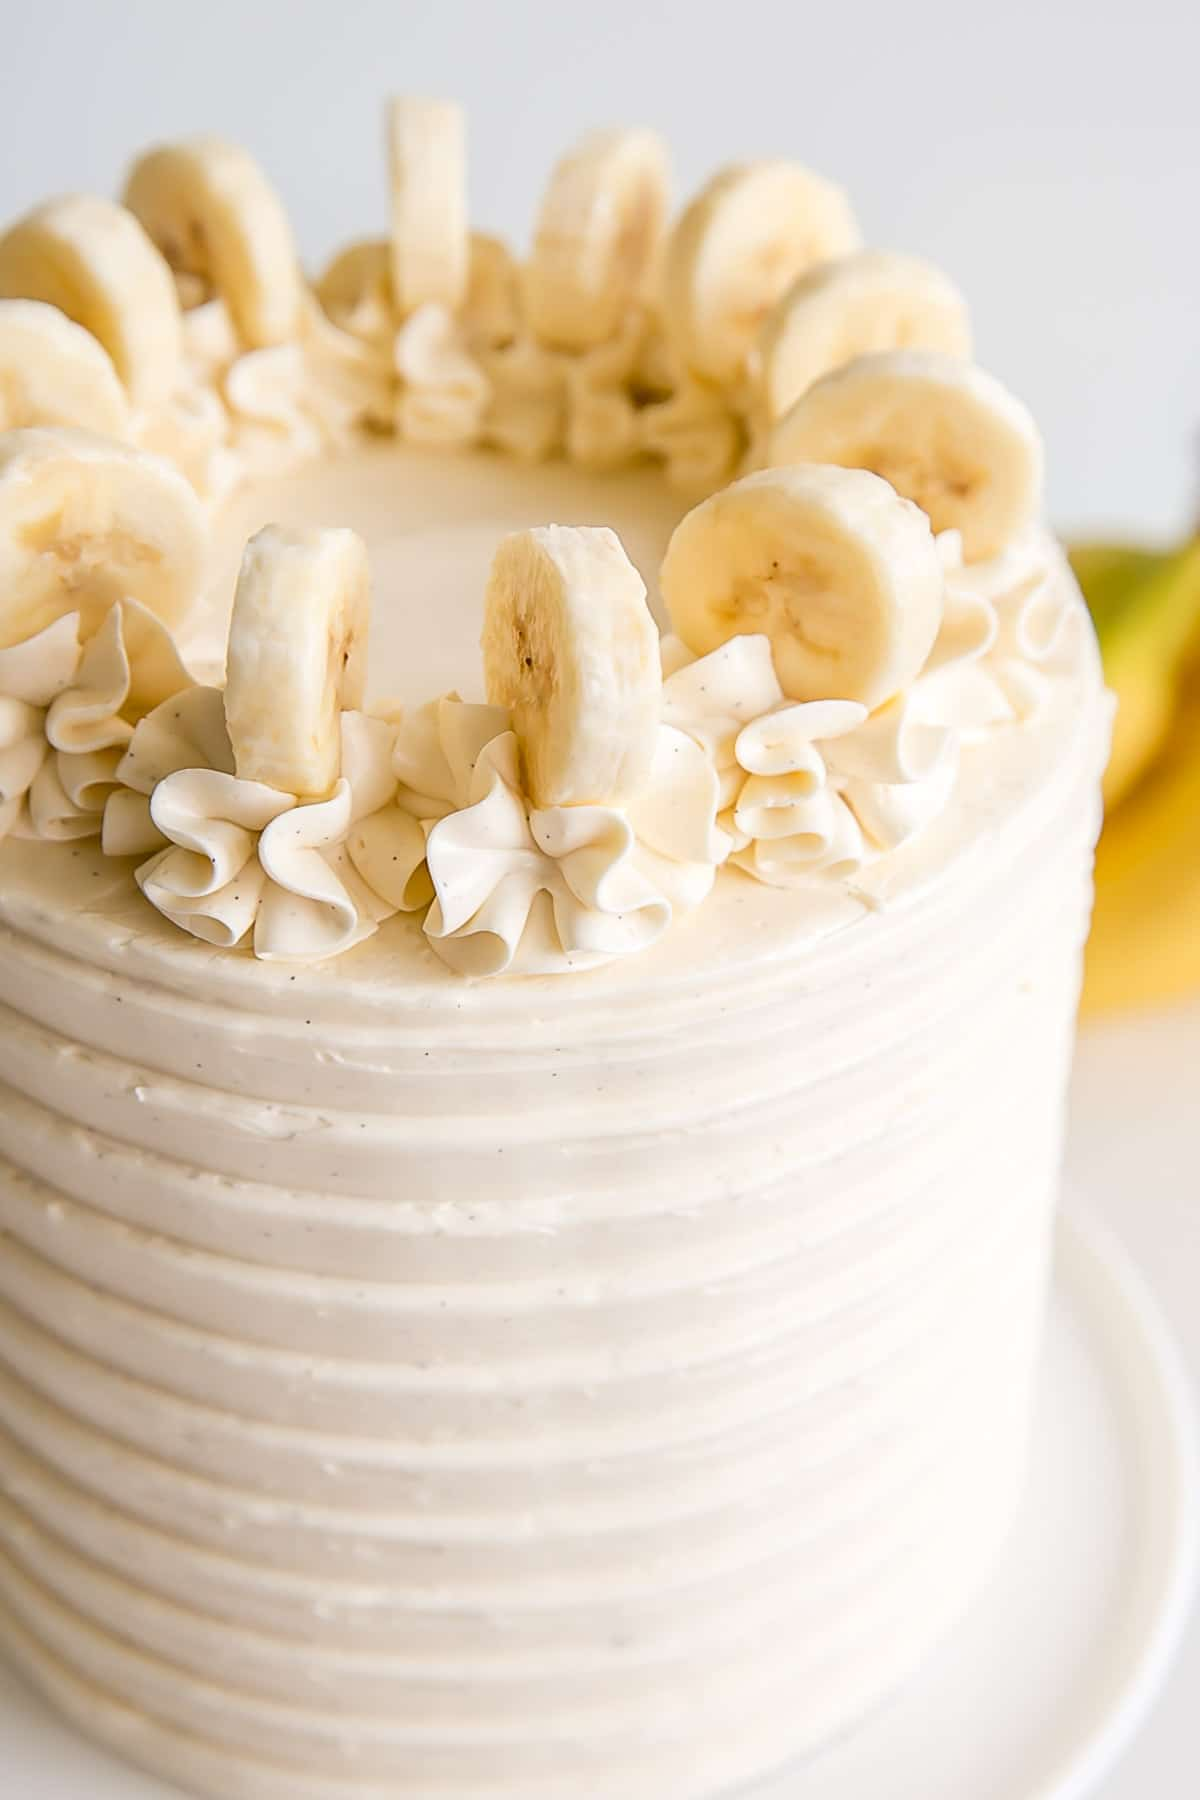 Close up of the top of the cake with rosettes and fresh banana slices.